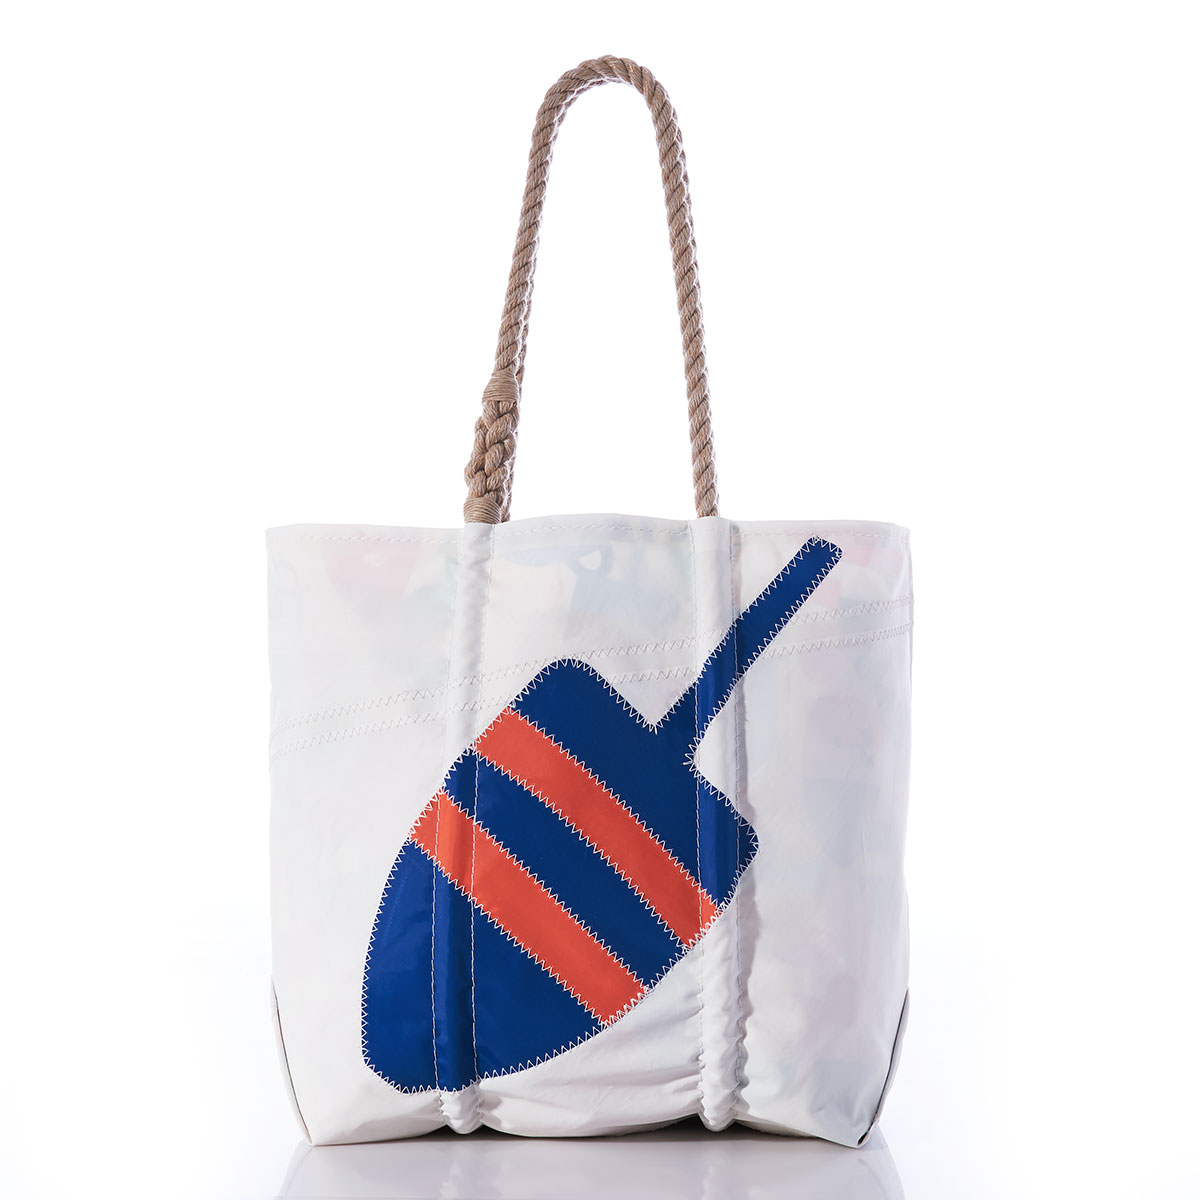 blue and orange striped buoy sits diagonally on a white recycled sail cloth tote with hemp rope handles